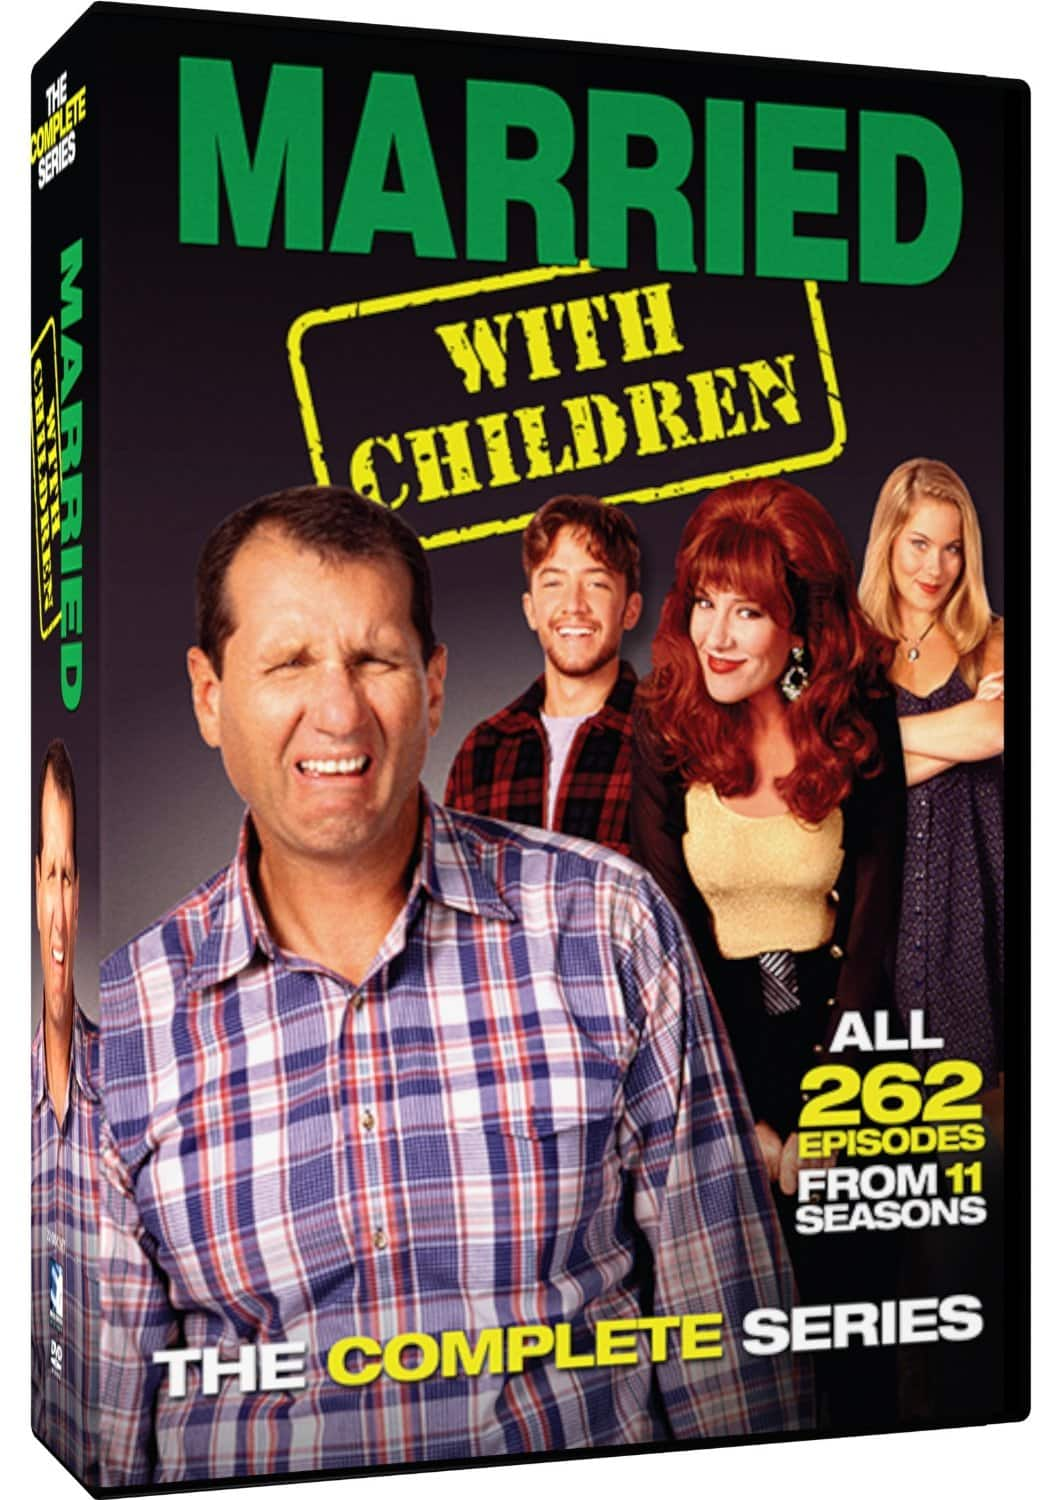 Married with Children: The Complete Series (21-Disc DVD) $19.99 + Free Shipping *Price Drop*